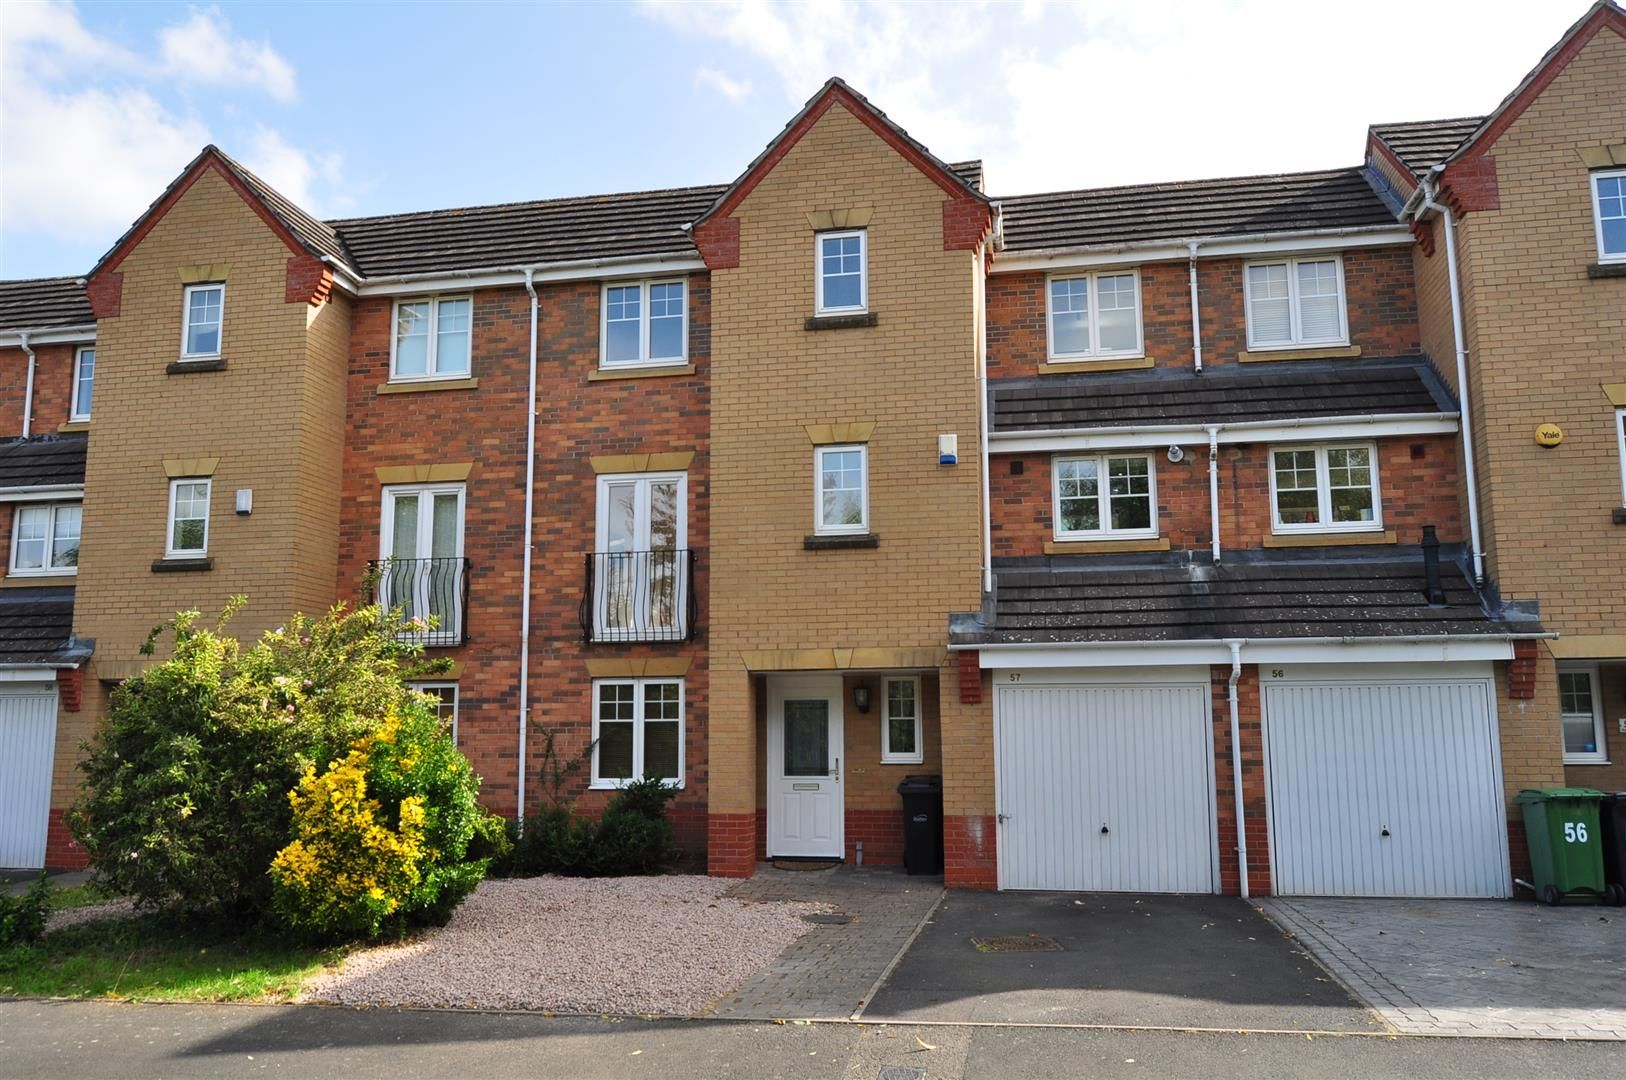 3 bed town-house for sale 24